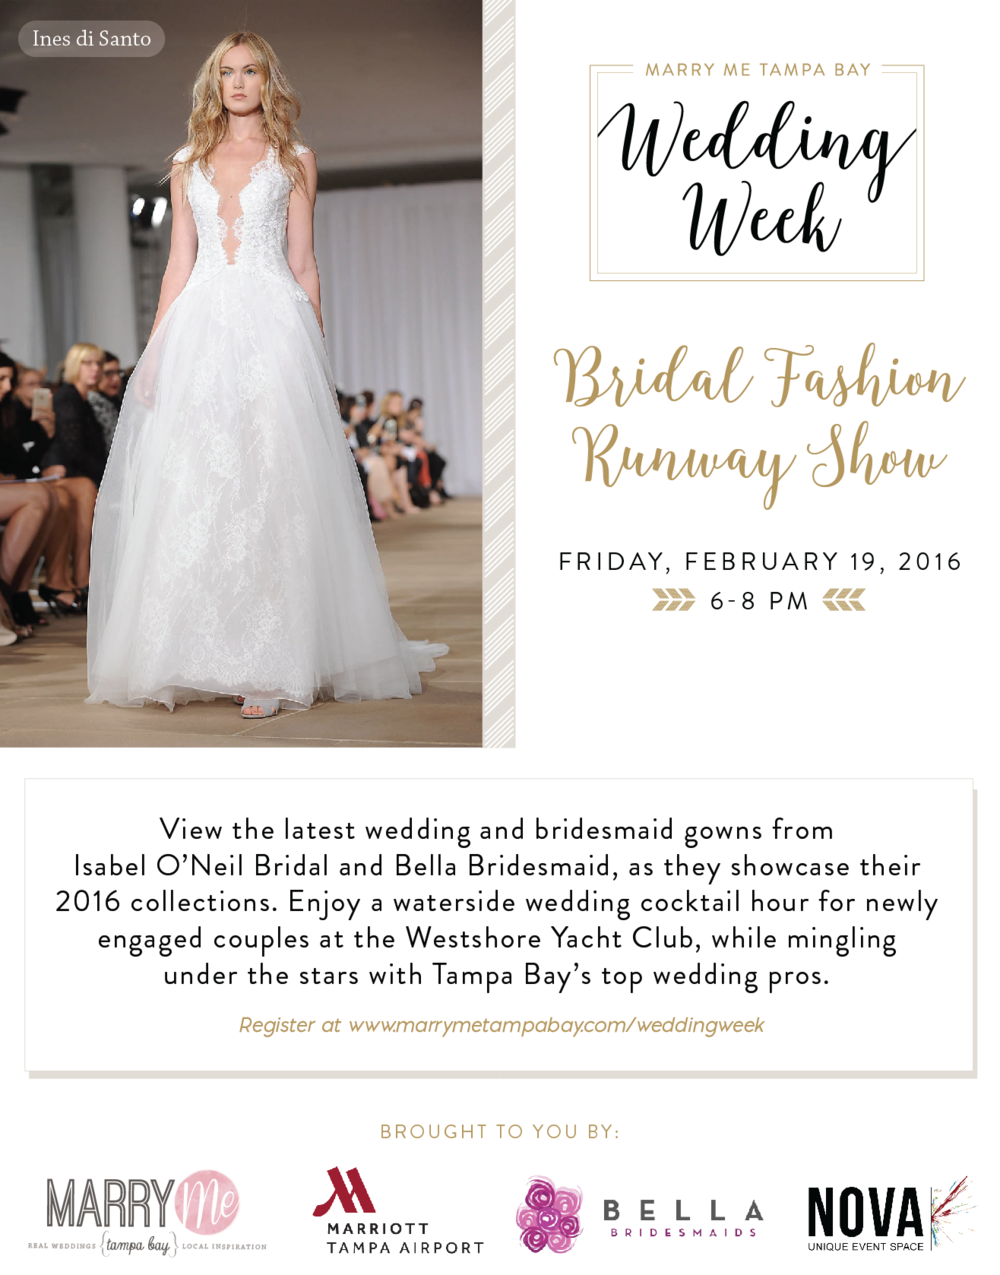 Bridal Fashion Runway Show Marry Me Tampa Bay Wedding Week Ines Di Santo